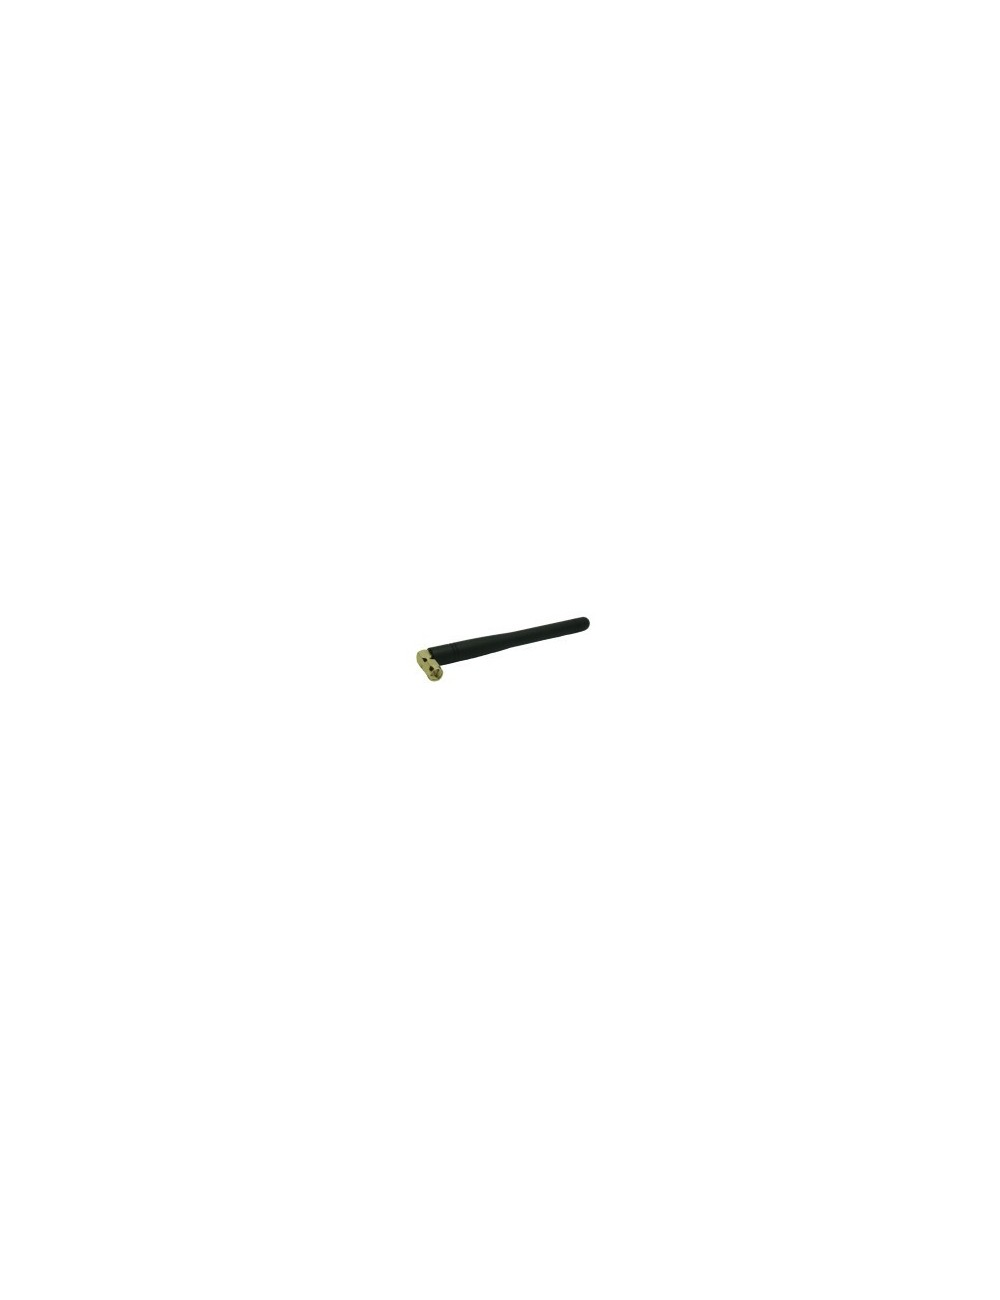 Foscam 5dbi Outdoor Antenna (Black)